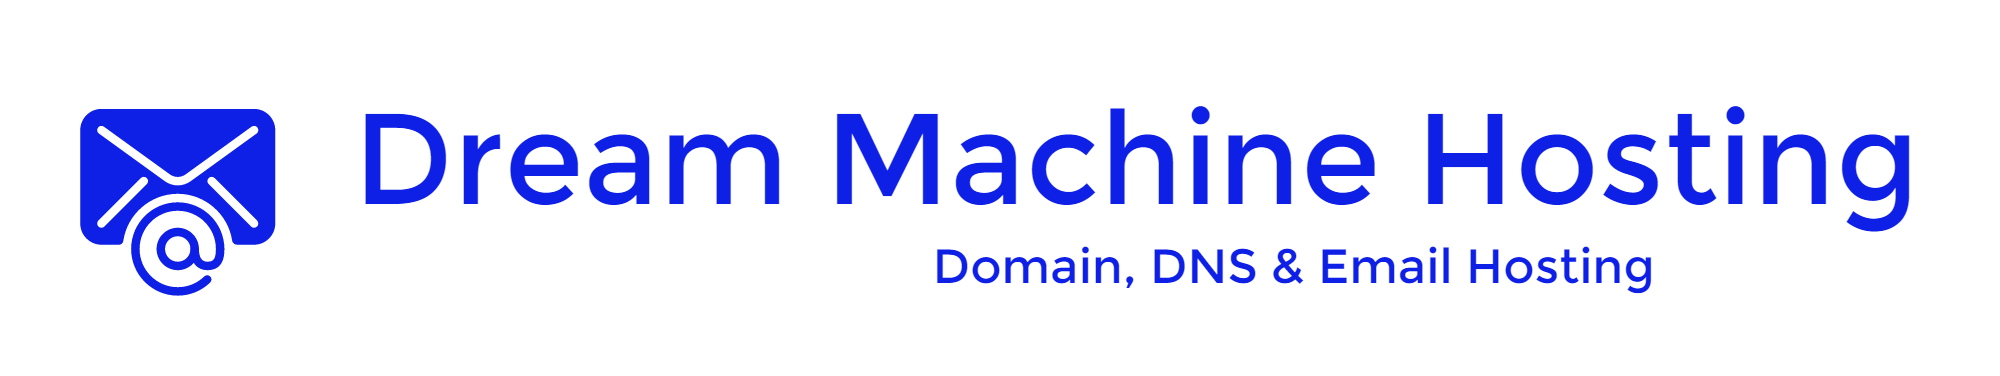 Domain Registrations, DNS Management and Email Hosting at highly competitive prices.